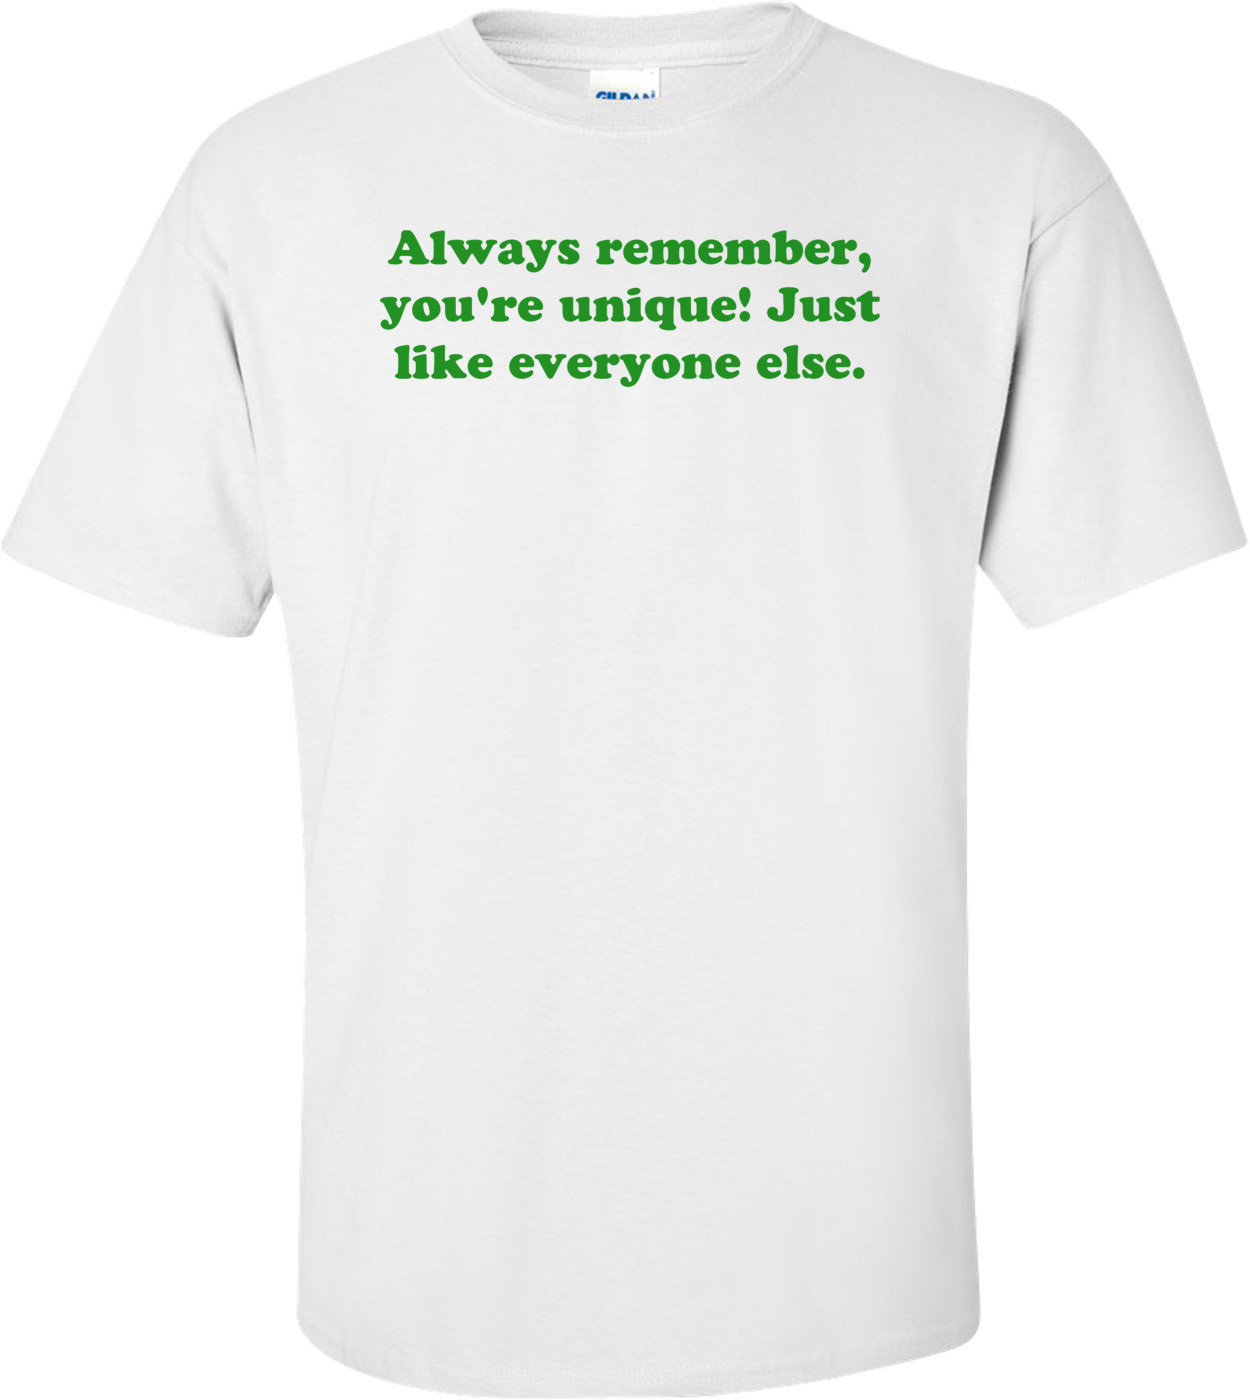 Always remember, you're unique! Just like everyone else. Shirt